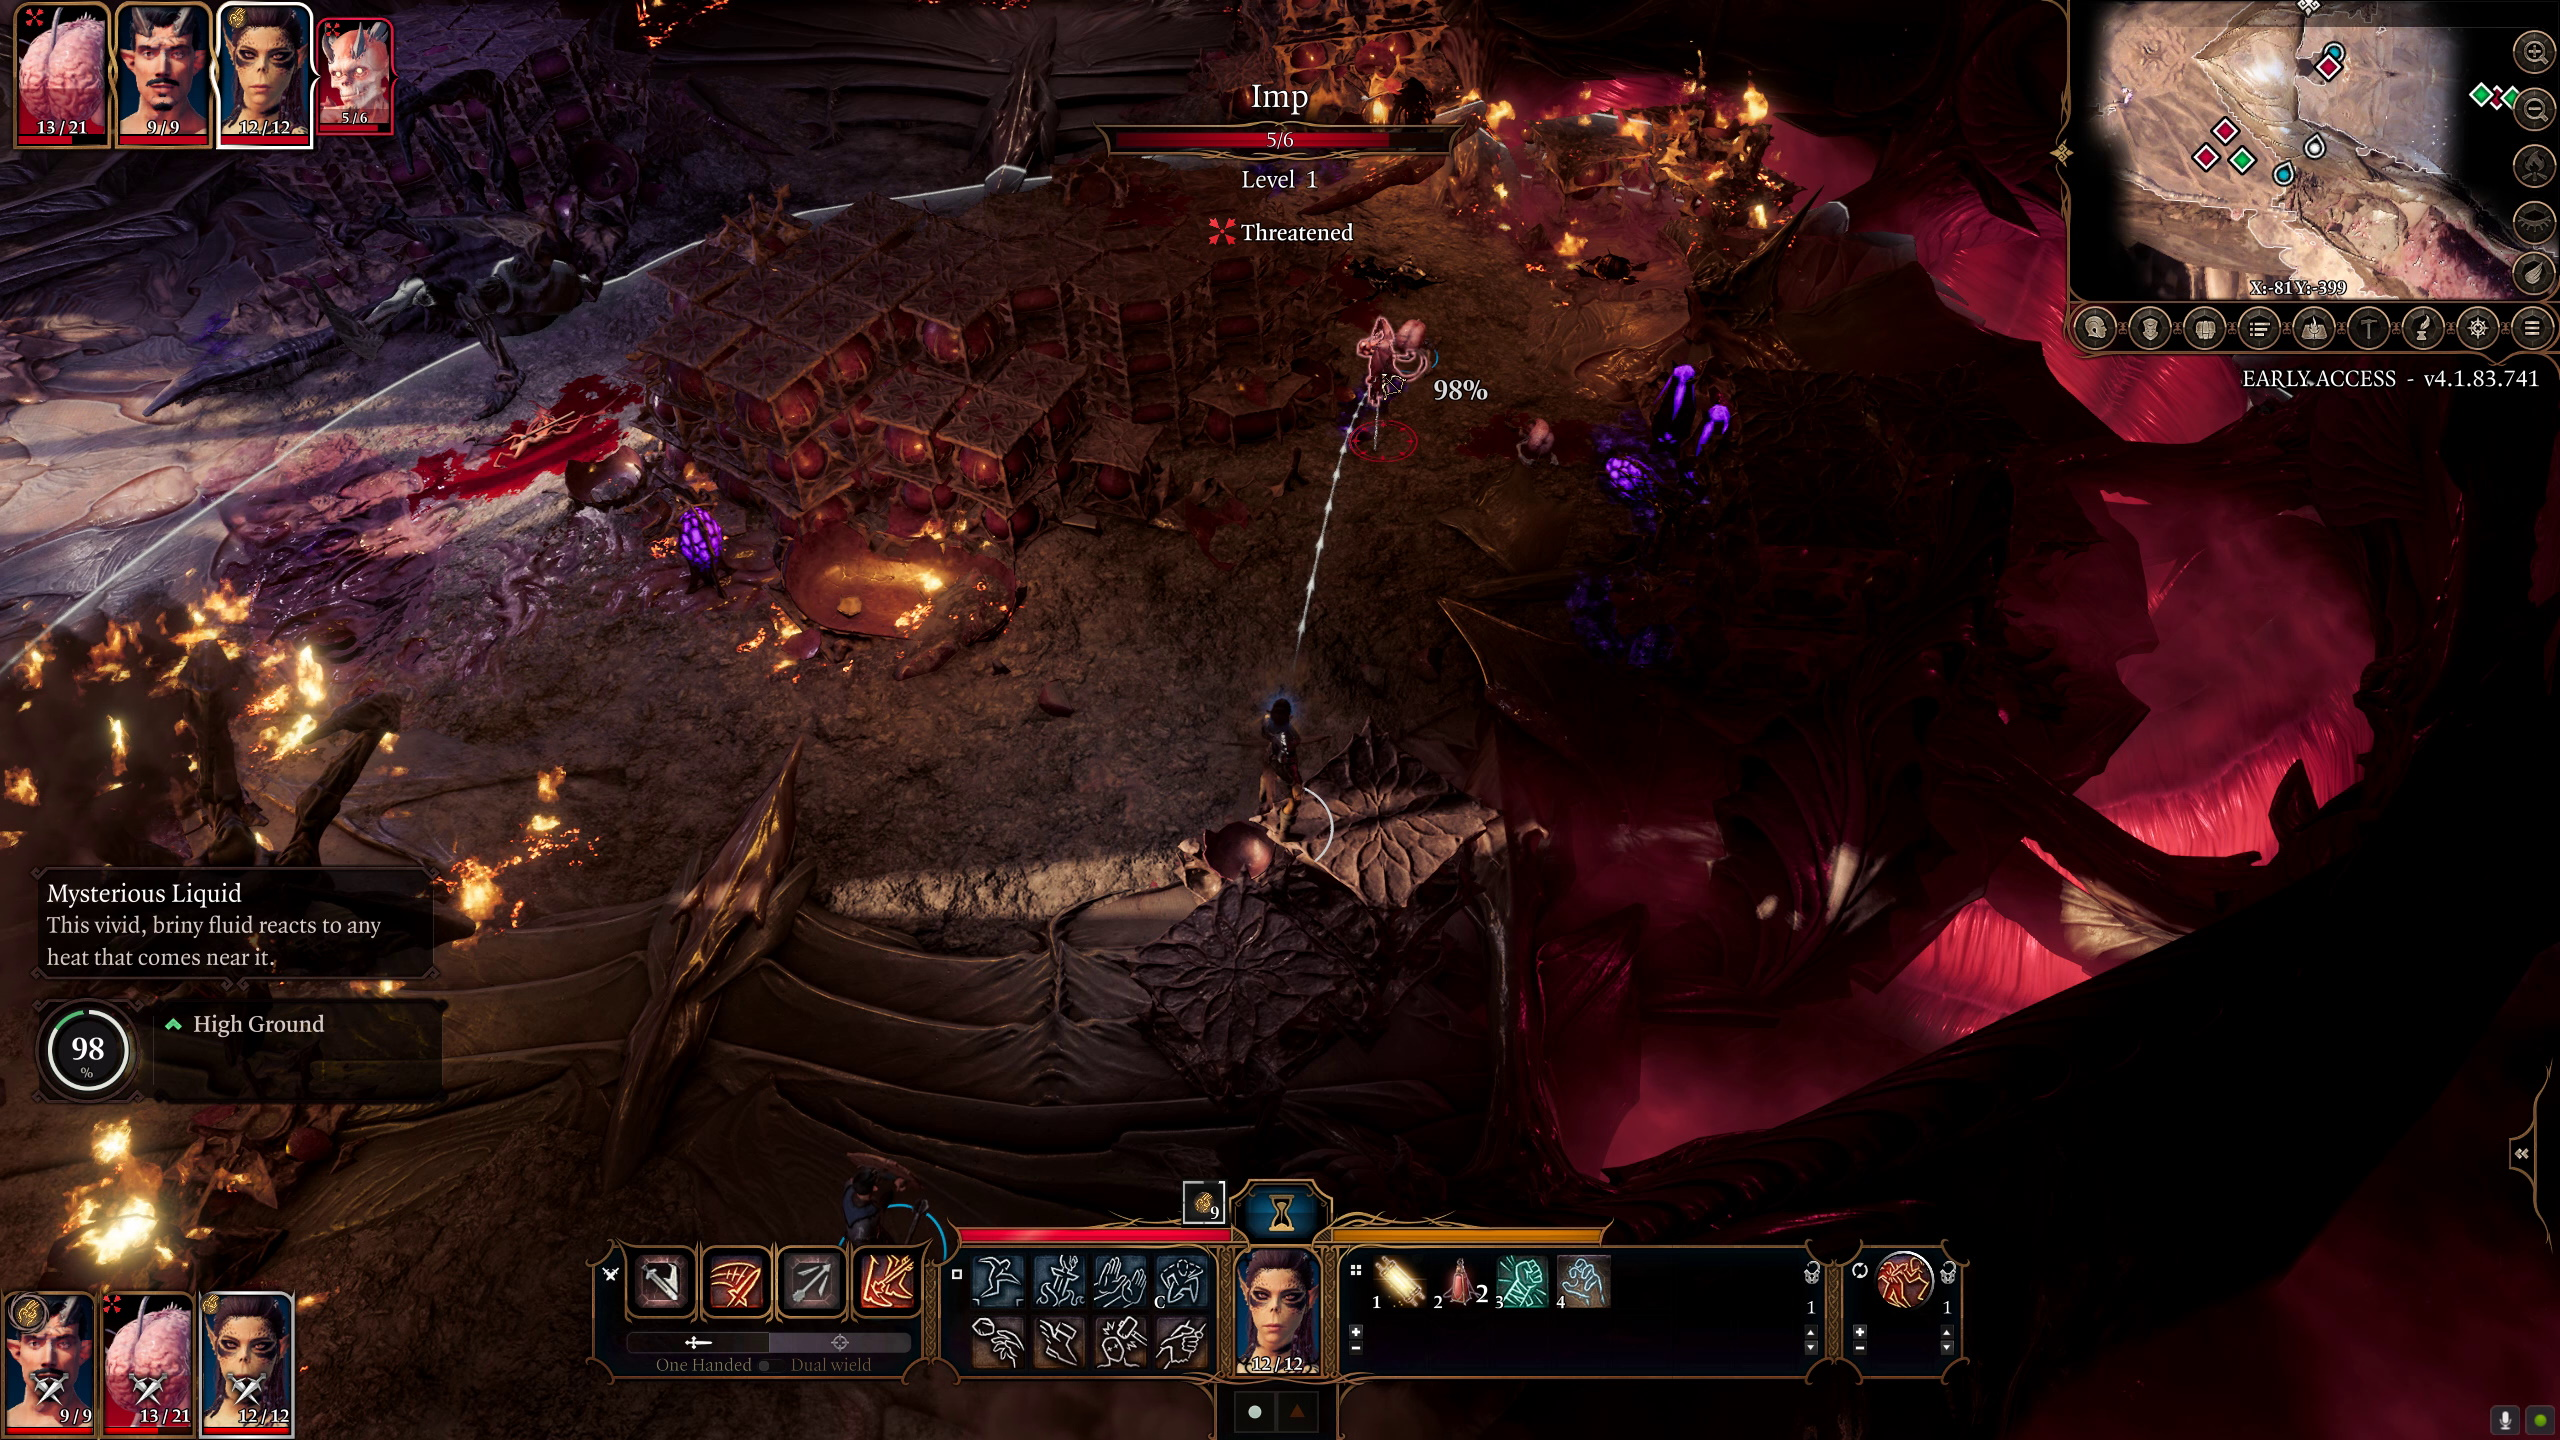 A screenshot of a fight from the early stage of the act. The camera is zoomed out to an isometric view point. The fight is taking place in an underground room, with many small cages stacked in the middle. Laezel the githyanki character is aiming a ranged attack at an imp.